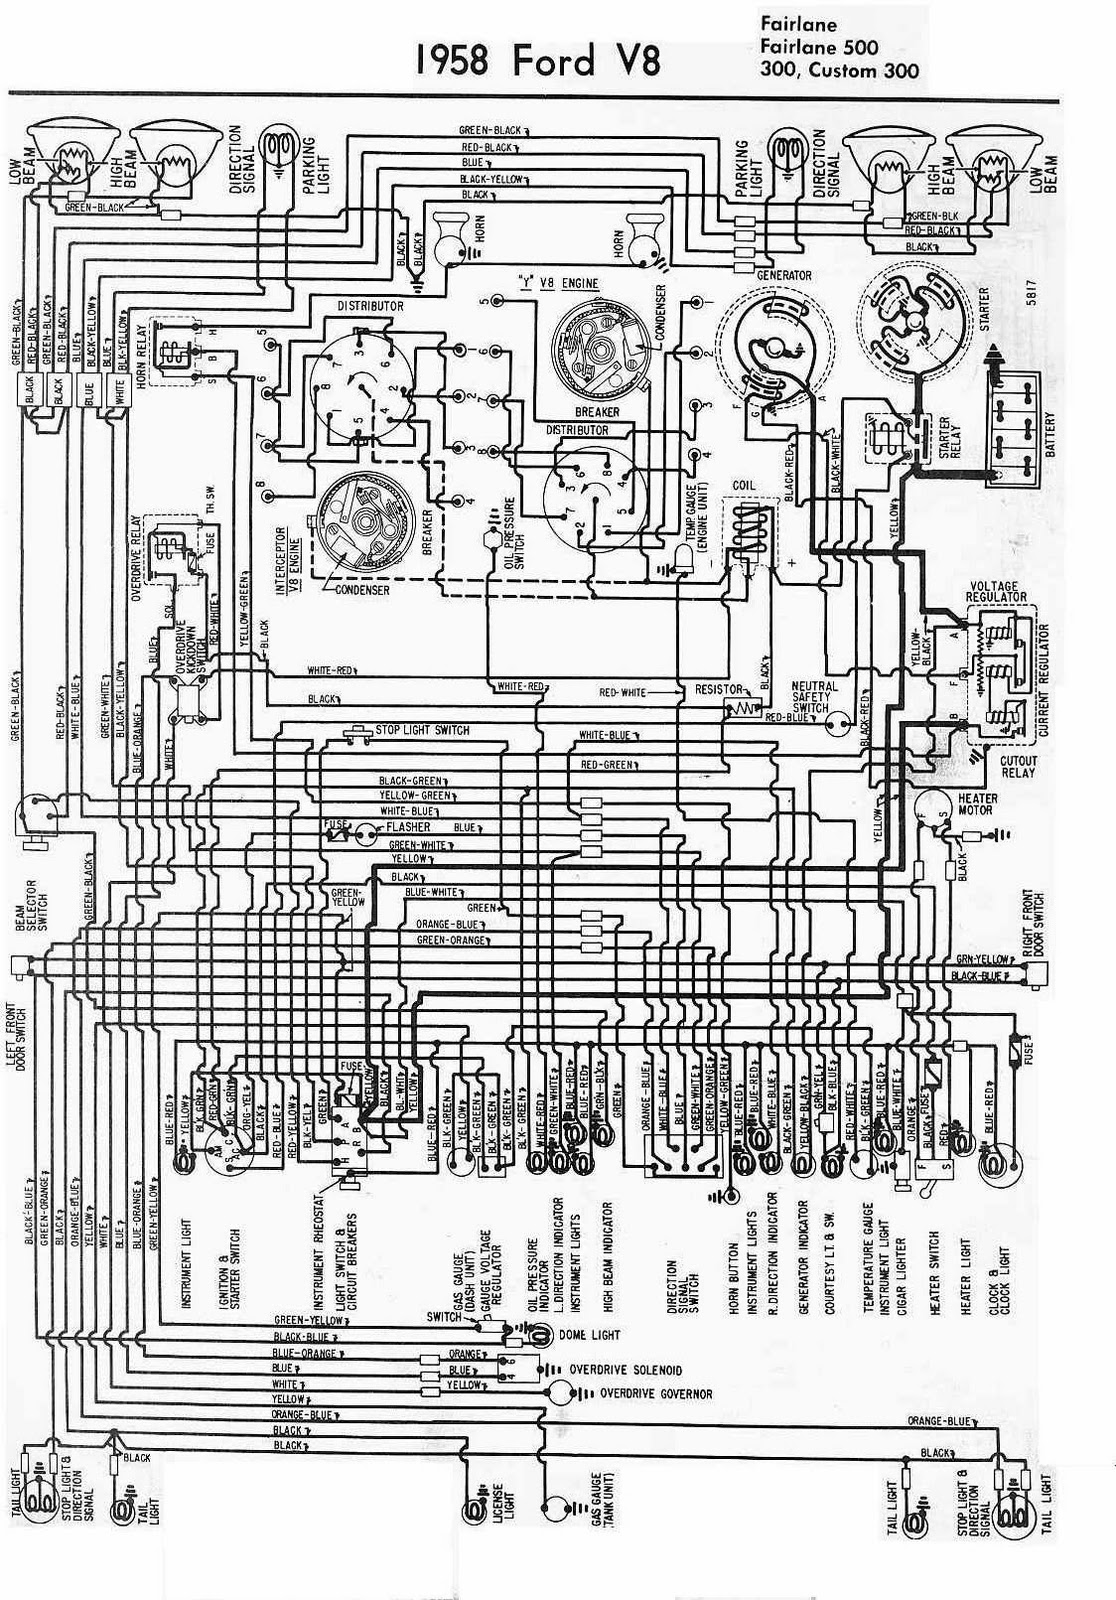 hight resolution of 1956 ford wiring wiring diagram centre 1956 ford f100 horn wiring diagram 1956 ford f100 wiring